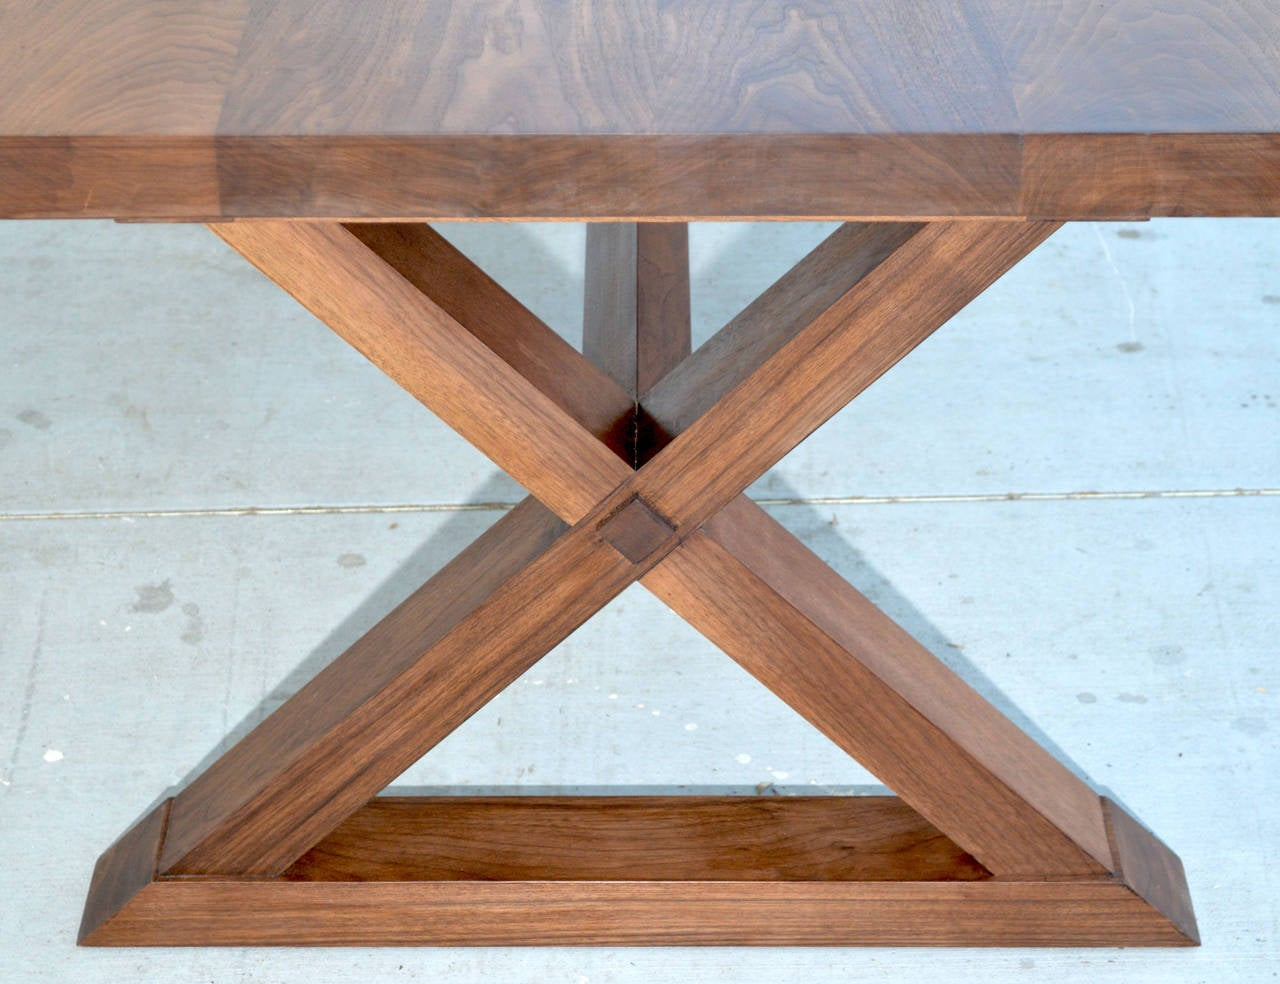 Minimalist Table Minimalist X Trestle Table In Black Walnut With Extensions Built